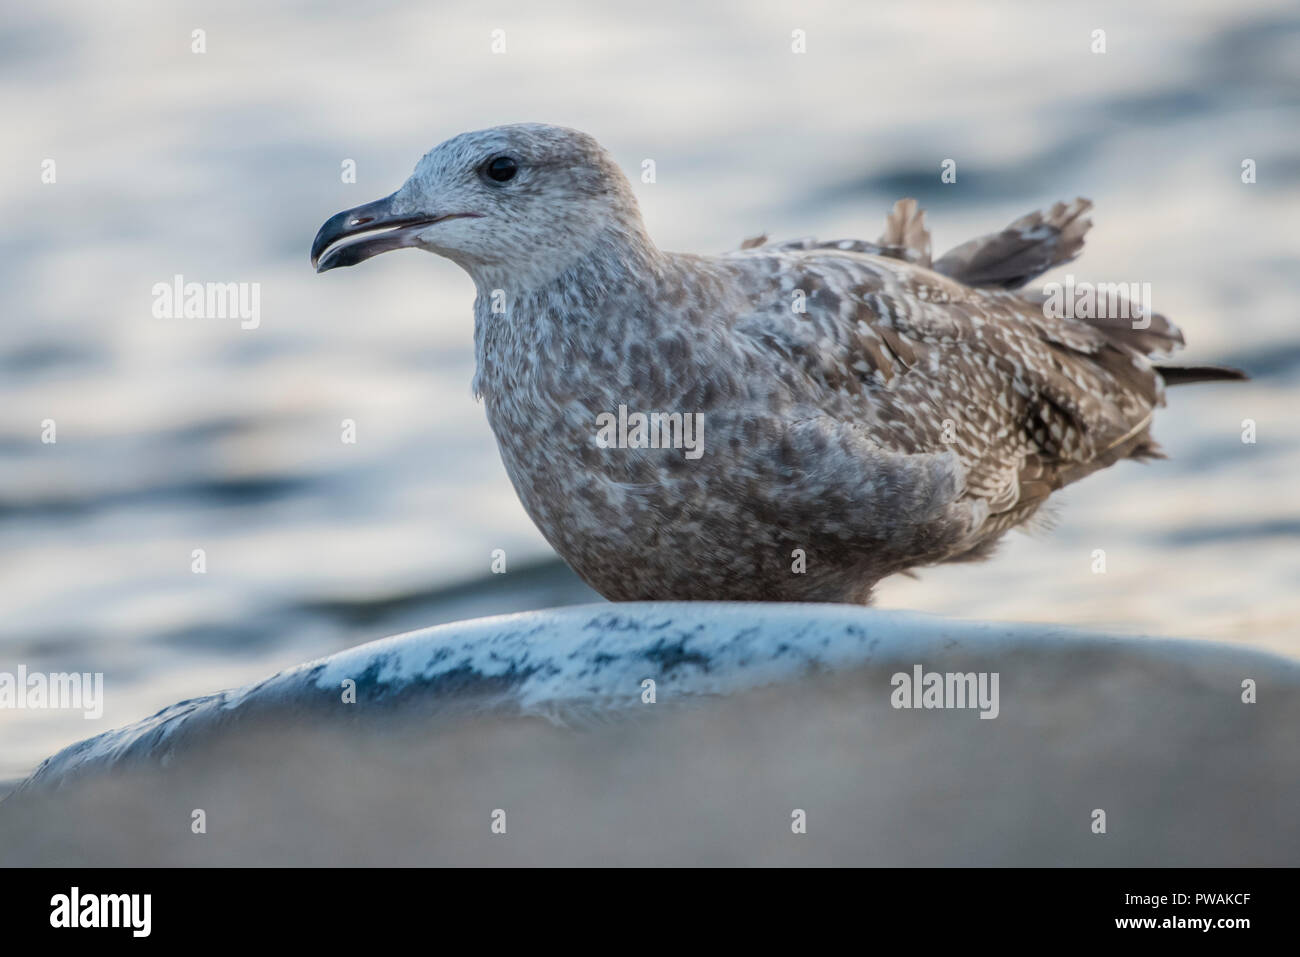 A juvenile herring gull from Lakeshore state park in Milwaukee, Wisconsin.  It is scavenging a dead salmon that has washed up on the beach. Stock Photo